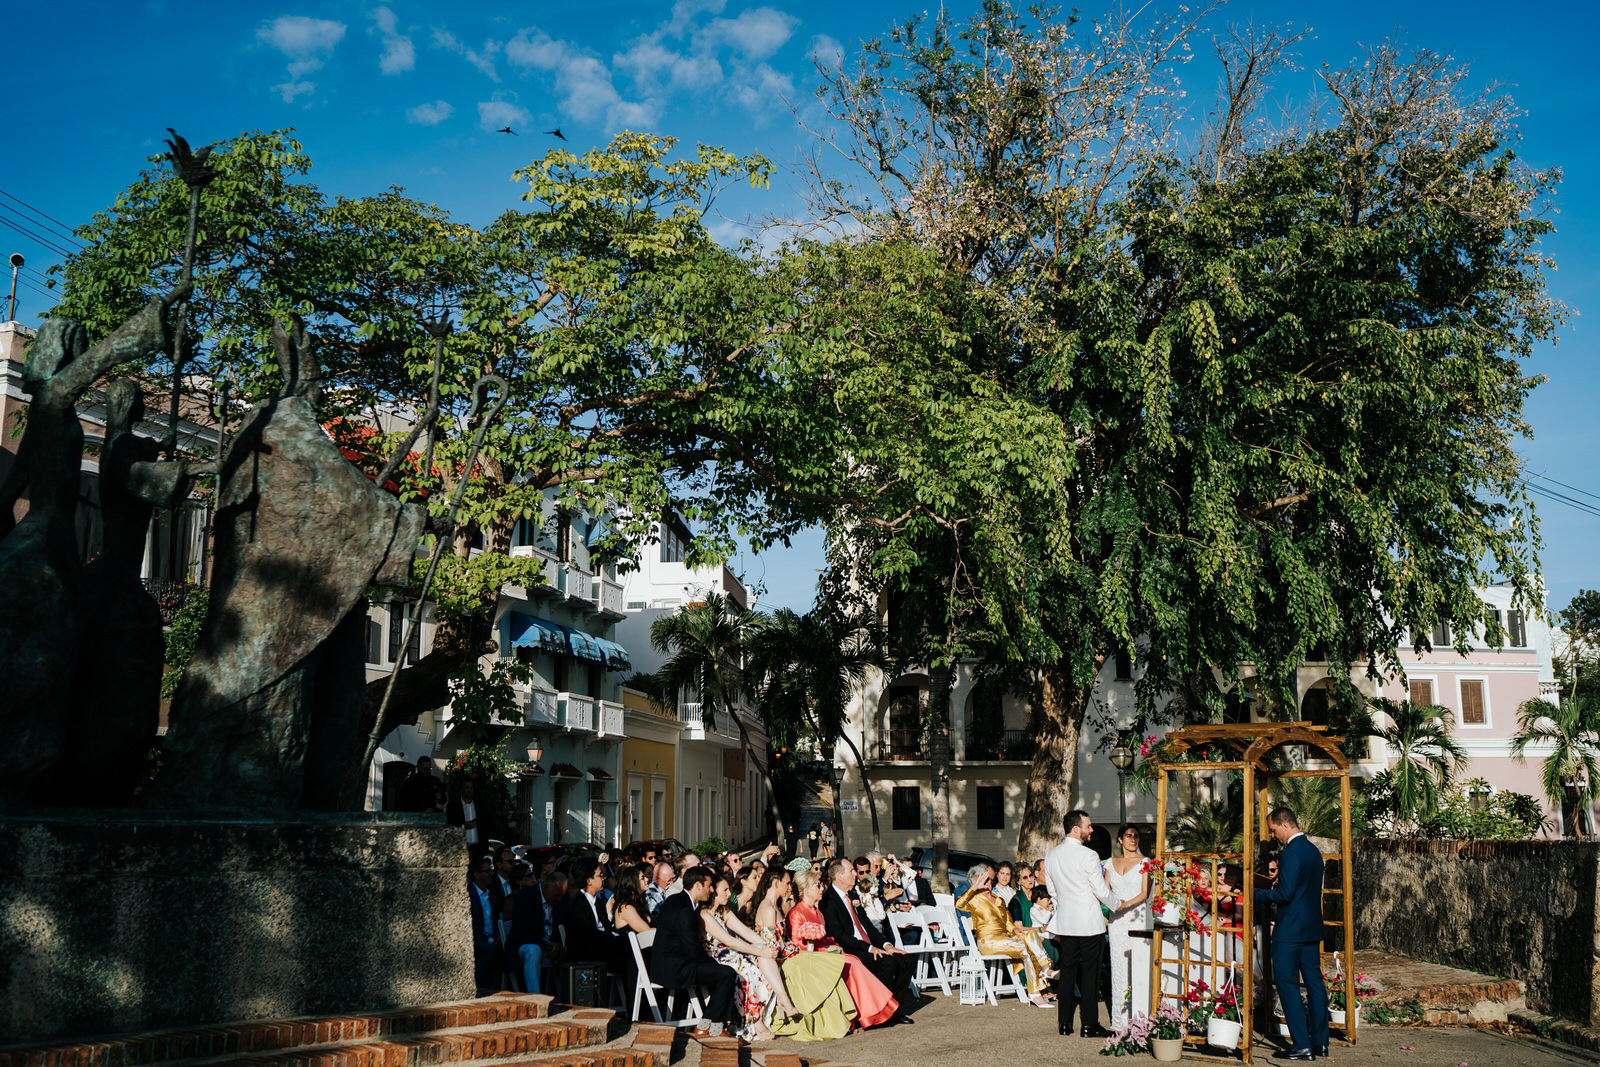 Wide photograph of where the wedding ceremony took place at La Rogativa in Old San Juan, Puerto Rico with a beautiful, sun-lit tree in the background and guests at the front